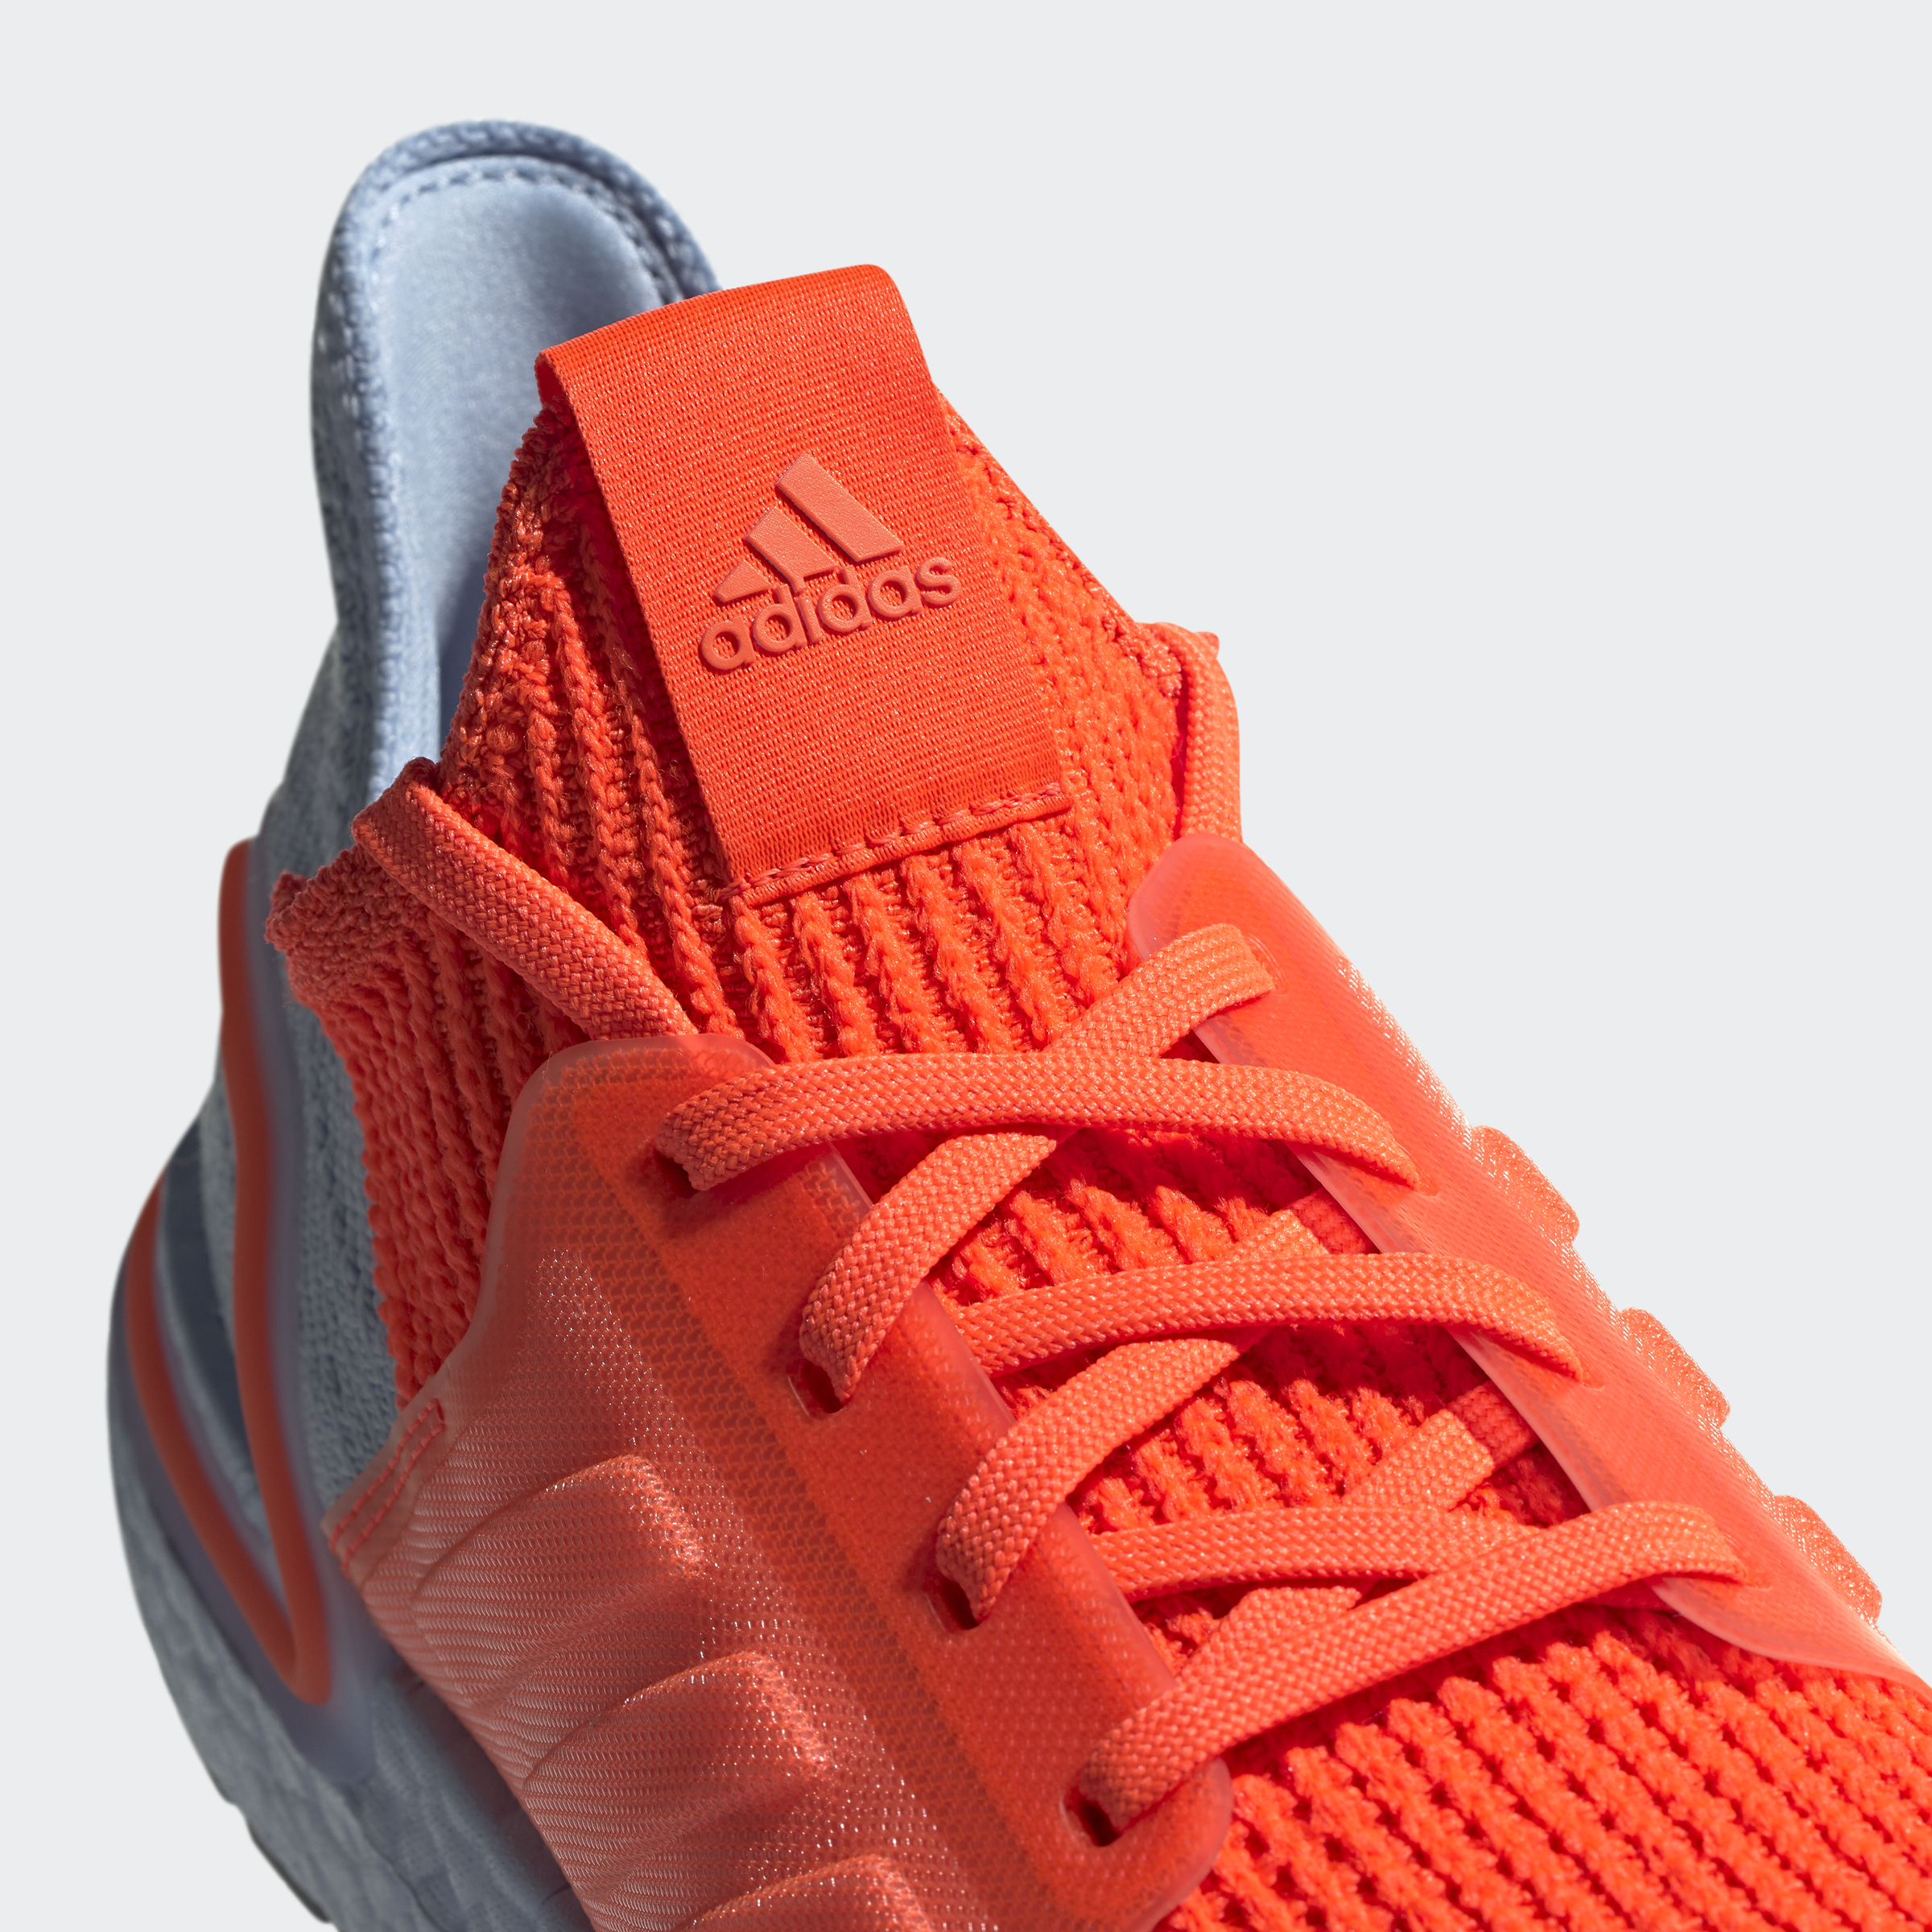 adidas-Ultraboost-19-Shoes-Athletic-amp-Sneakers thumbnail 77